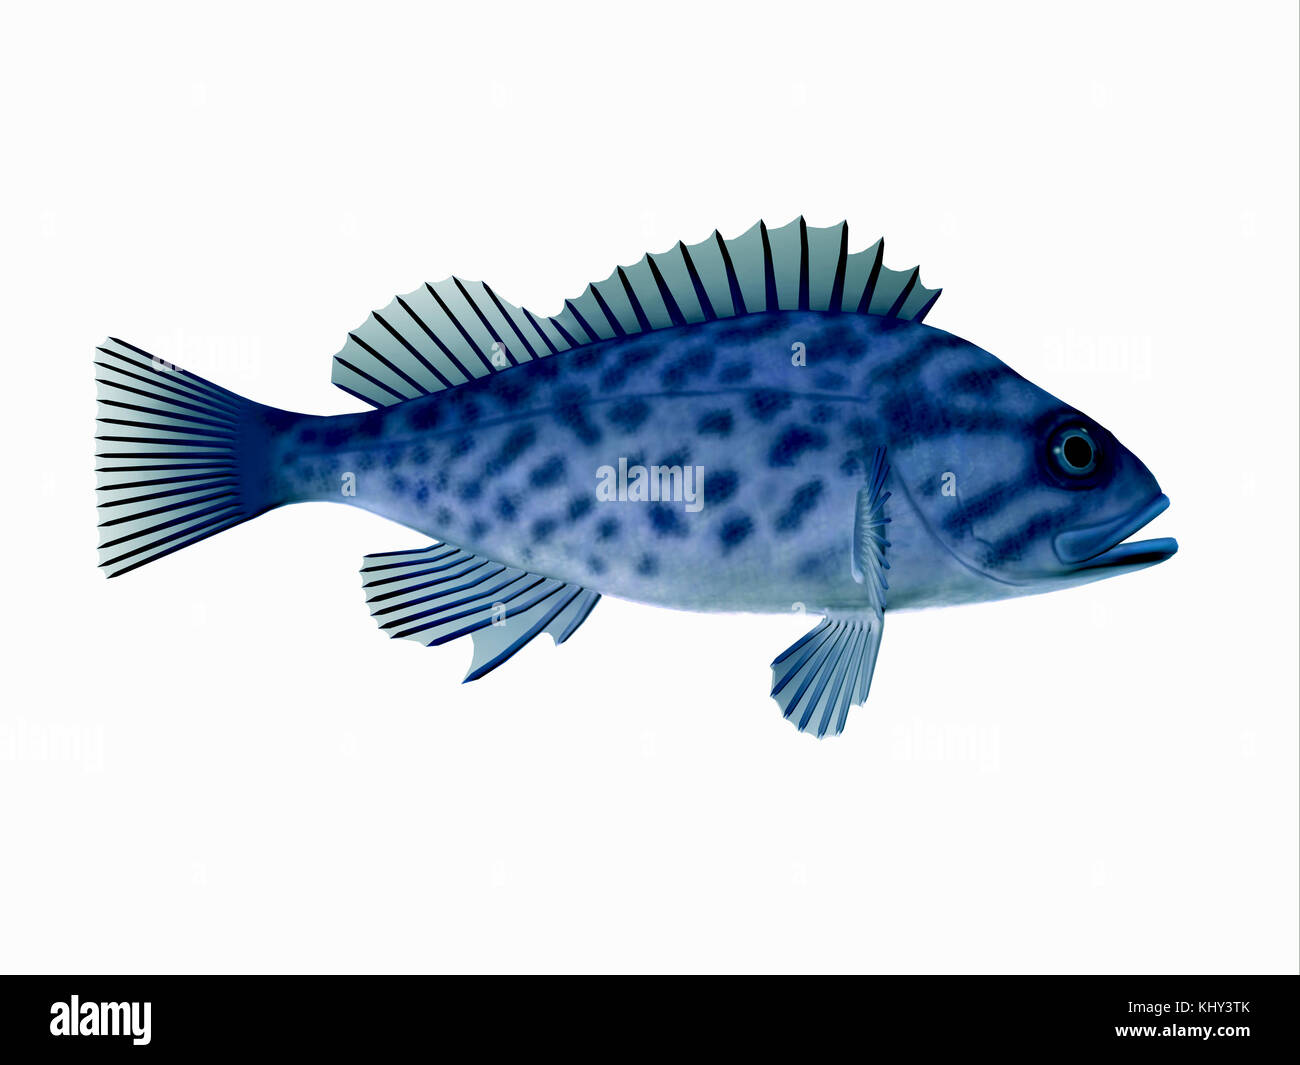 Blue Rockfish - Blue Rockfish spend most of the time among rocky crevices and boulders in the Pacific ocean and - Stock Image